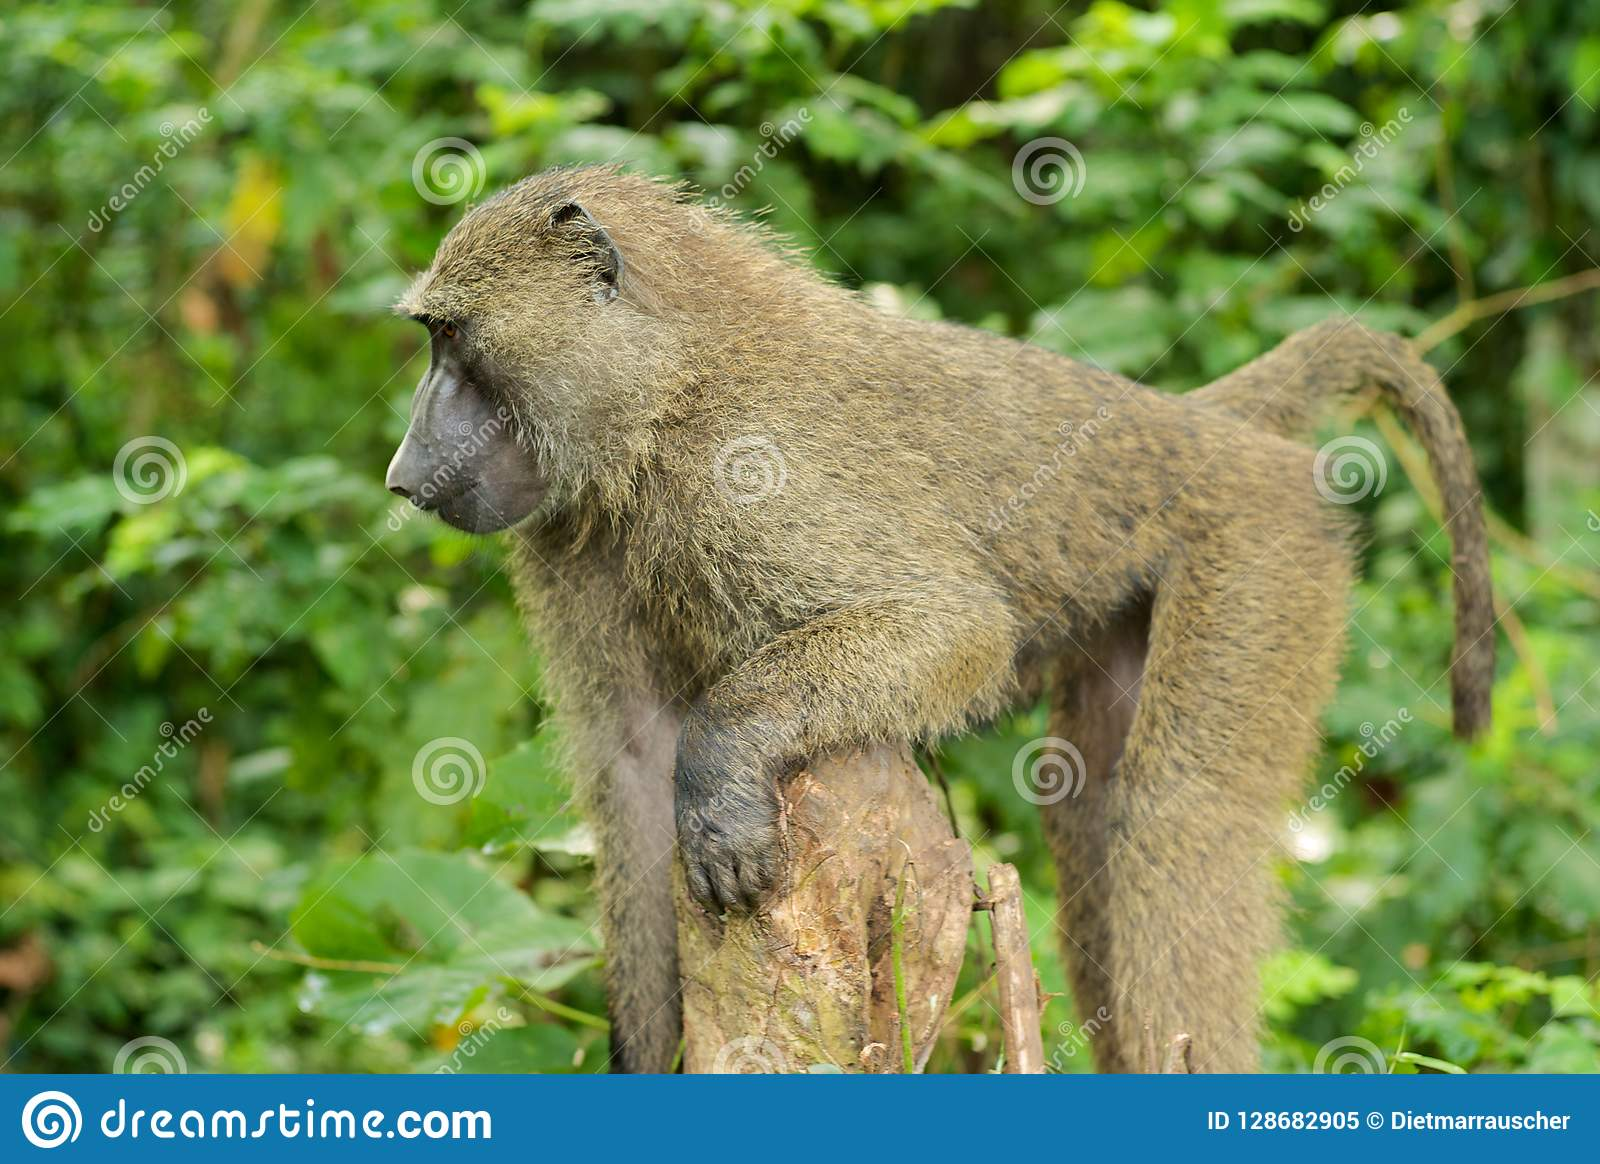 A Single Baboon in the Jungle